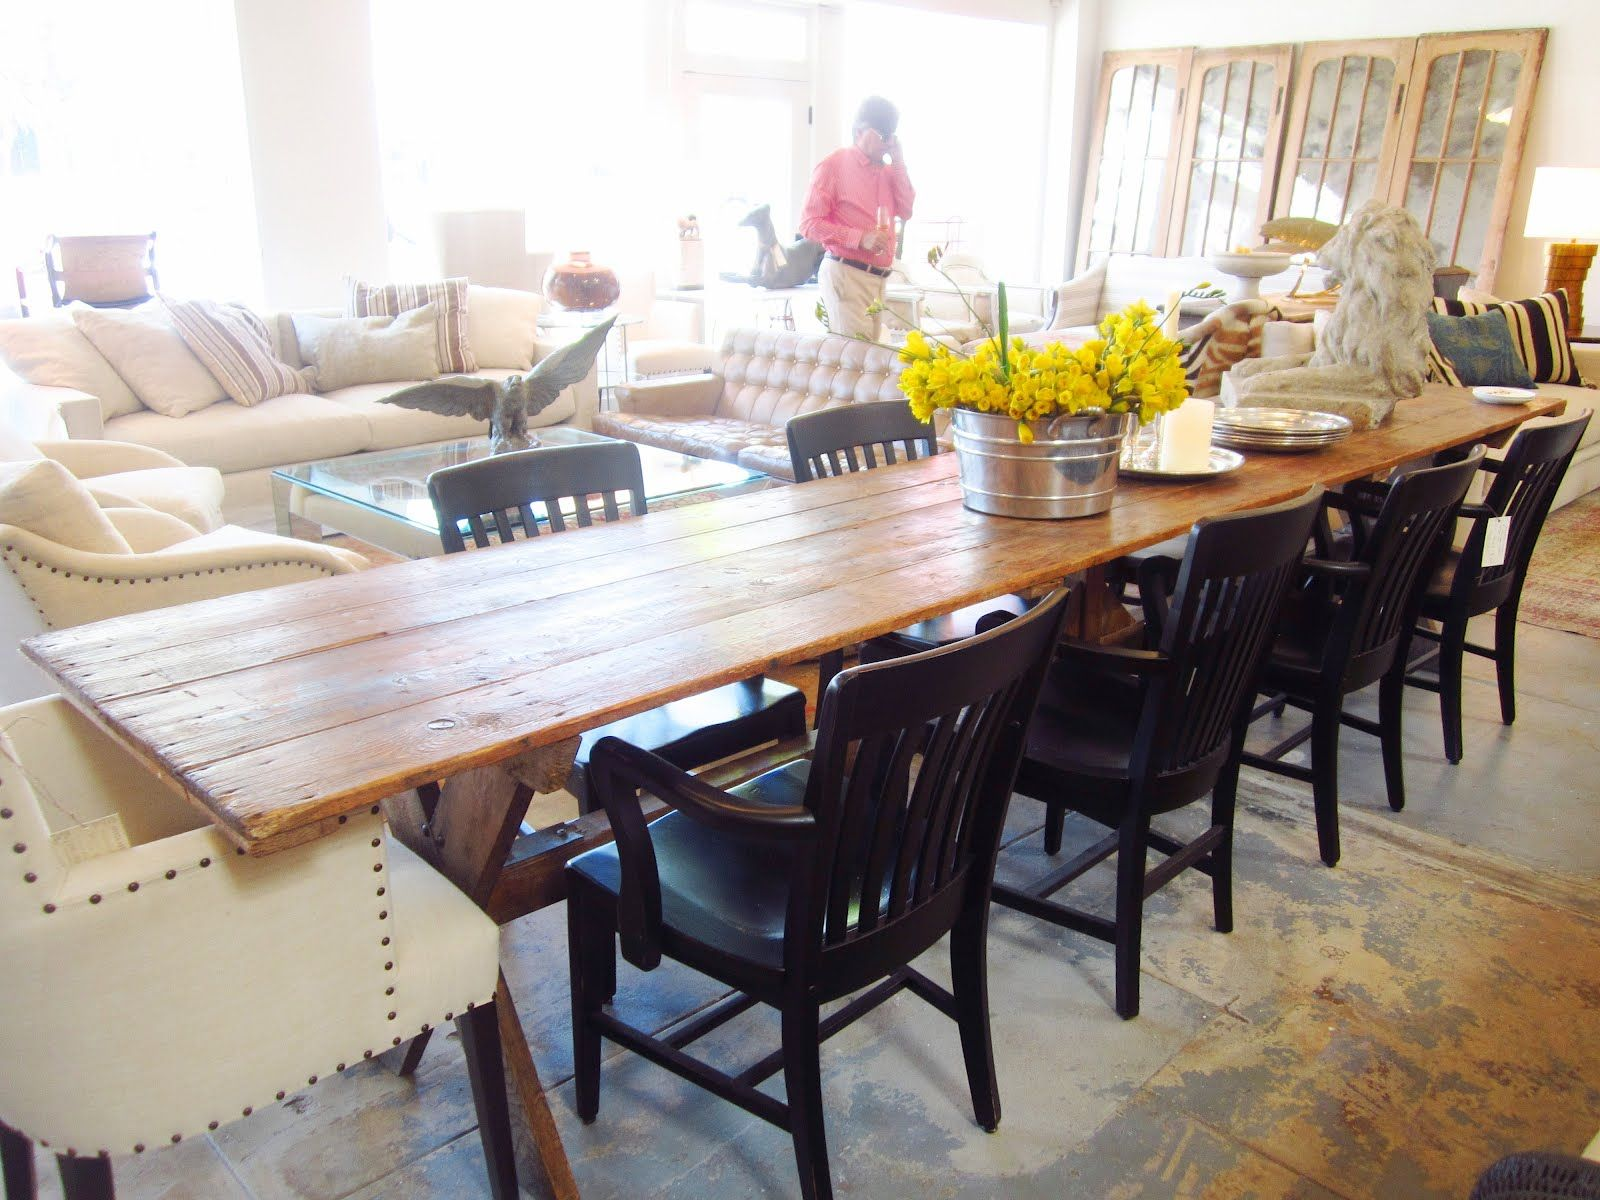 SHOP WATCH RELAXED ELEGANCE REIGNS SUPREME AT BRENDA ANTIN IN LOS ANGELES AND HOW I RAN INTO SANDRA BULLOCK THERE Reclaimed Wood TablesWood Dining